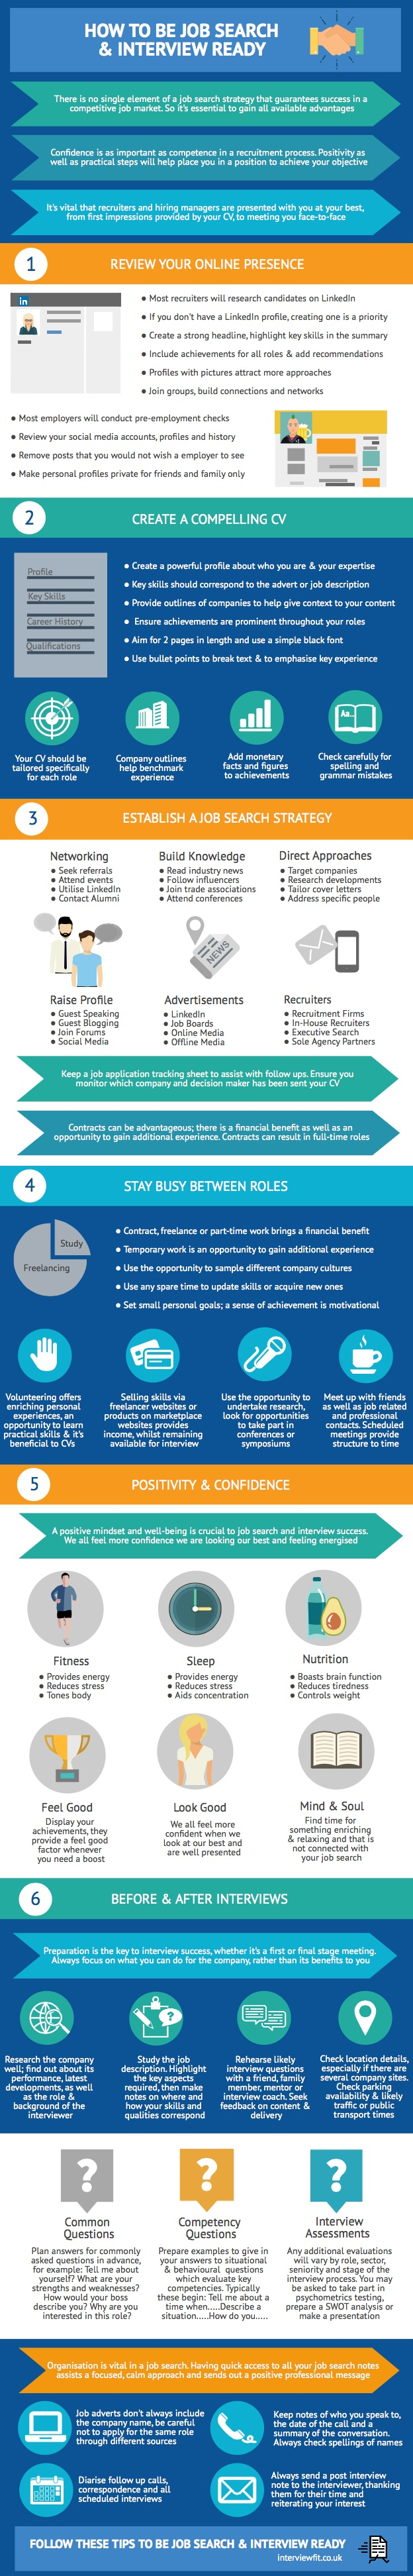 How to be Job Search and Interview Ready Infographic